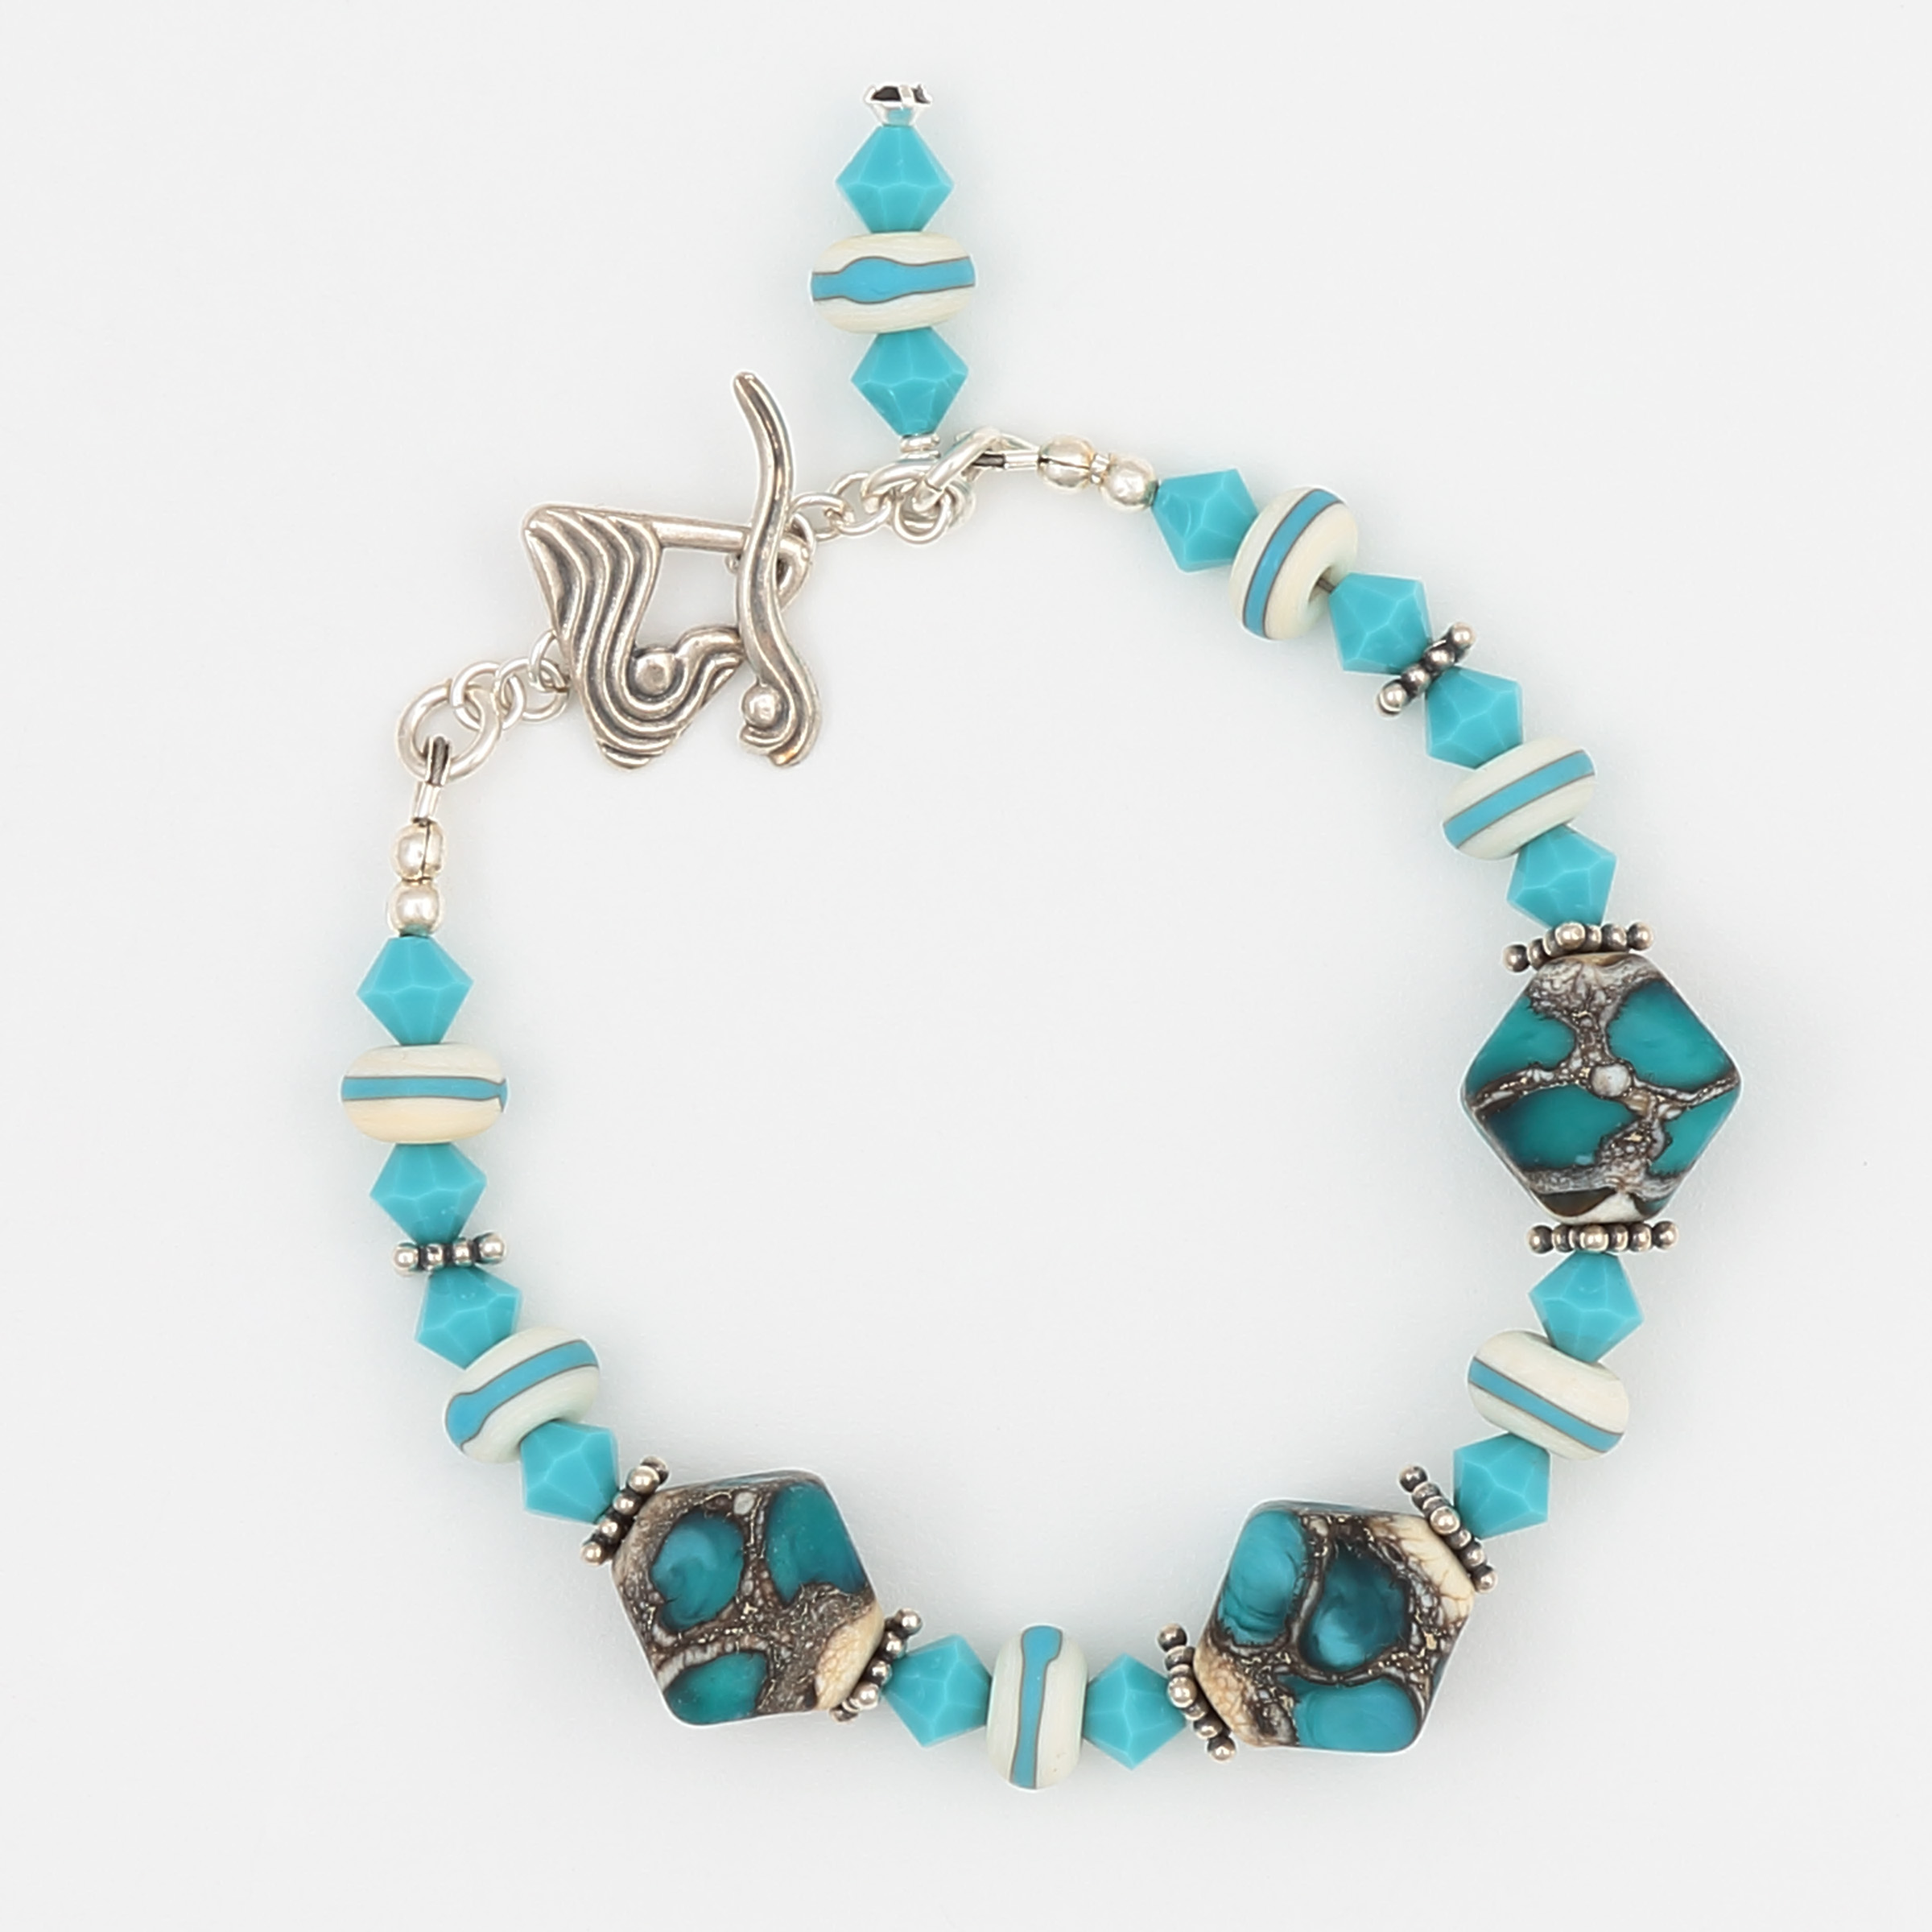 ARIZONA BRACELET- white and turquoise art glass with Swarovski crystal and an unusual sterling silver clasp